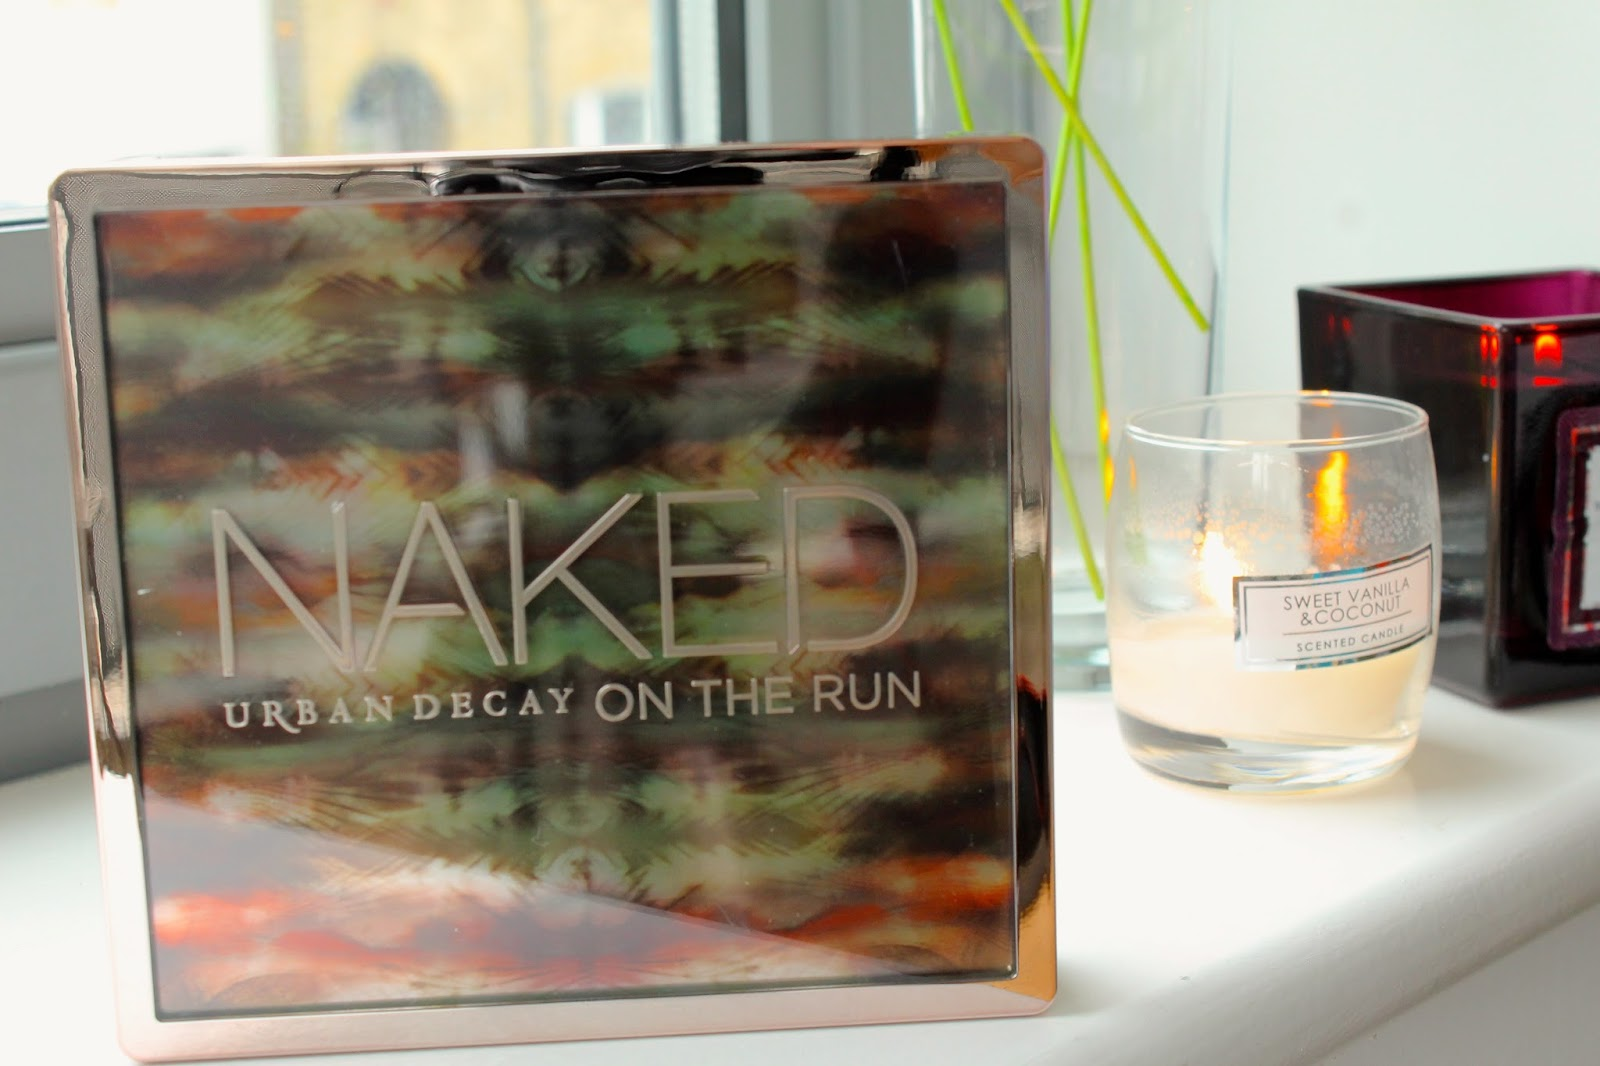 Bec Boop reviews urban decay naked on the run